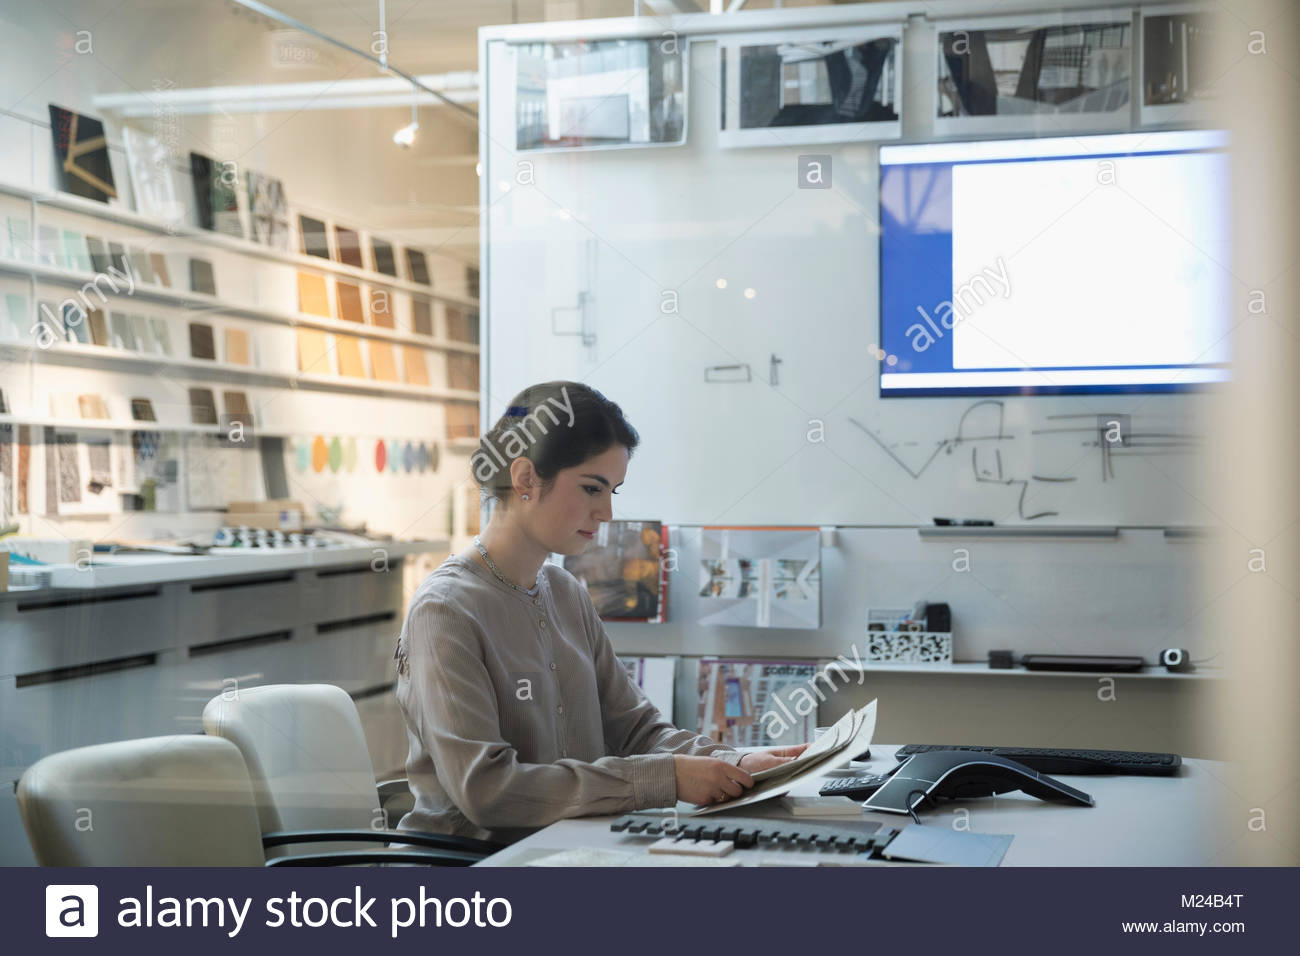 Designer viewing swatches, planning in creative office - Stock Image